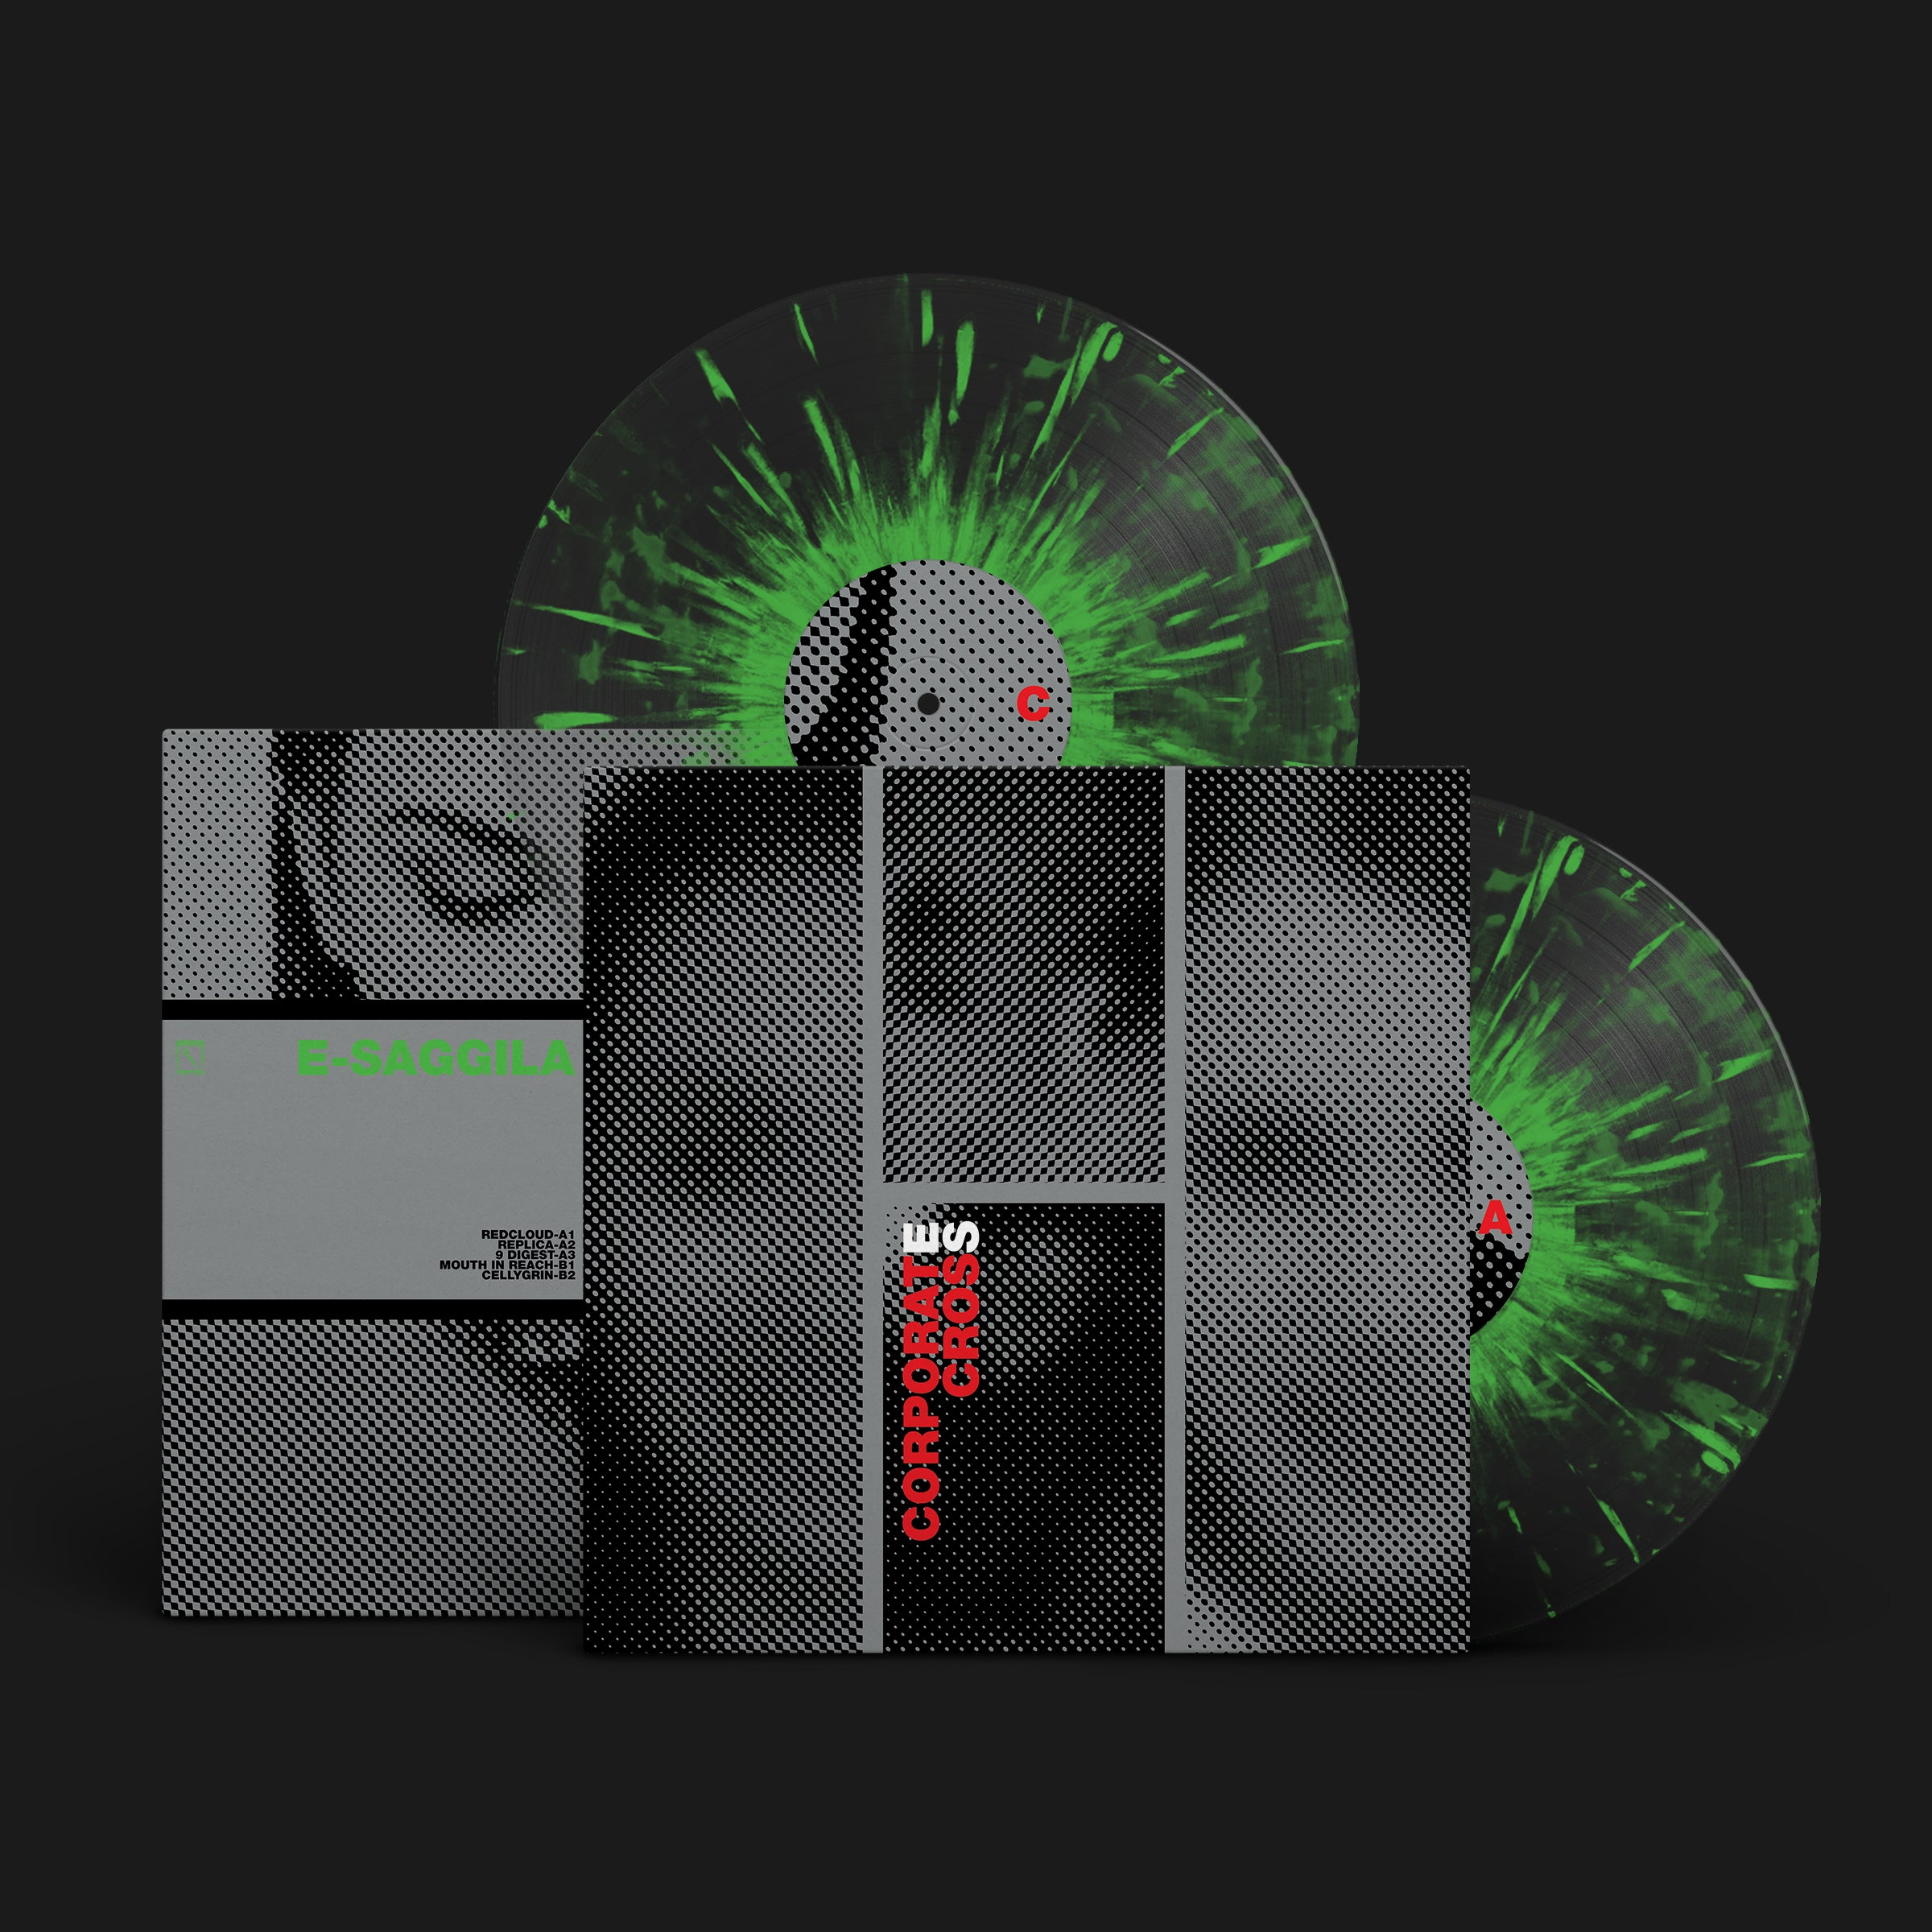 E-SAGGILA | CORPORATE CROSS | 2XLP CLEAR WITH GREEN SPLATTER VINYL